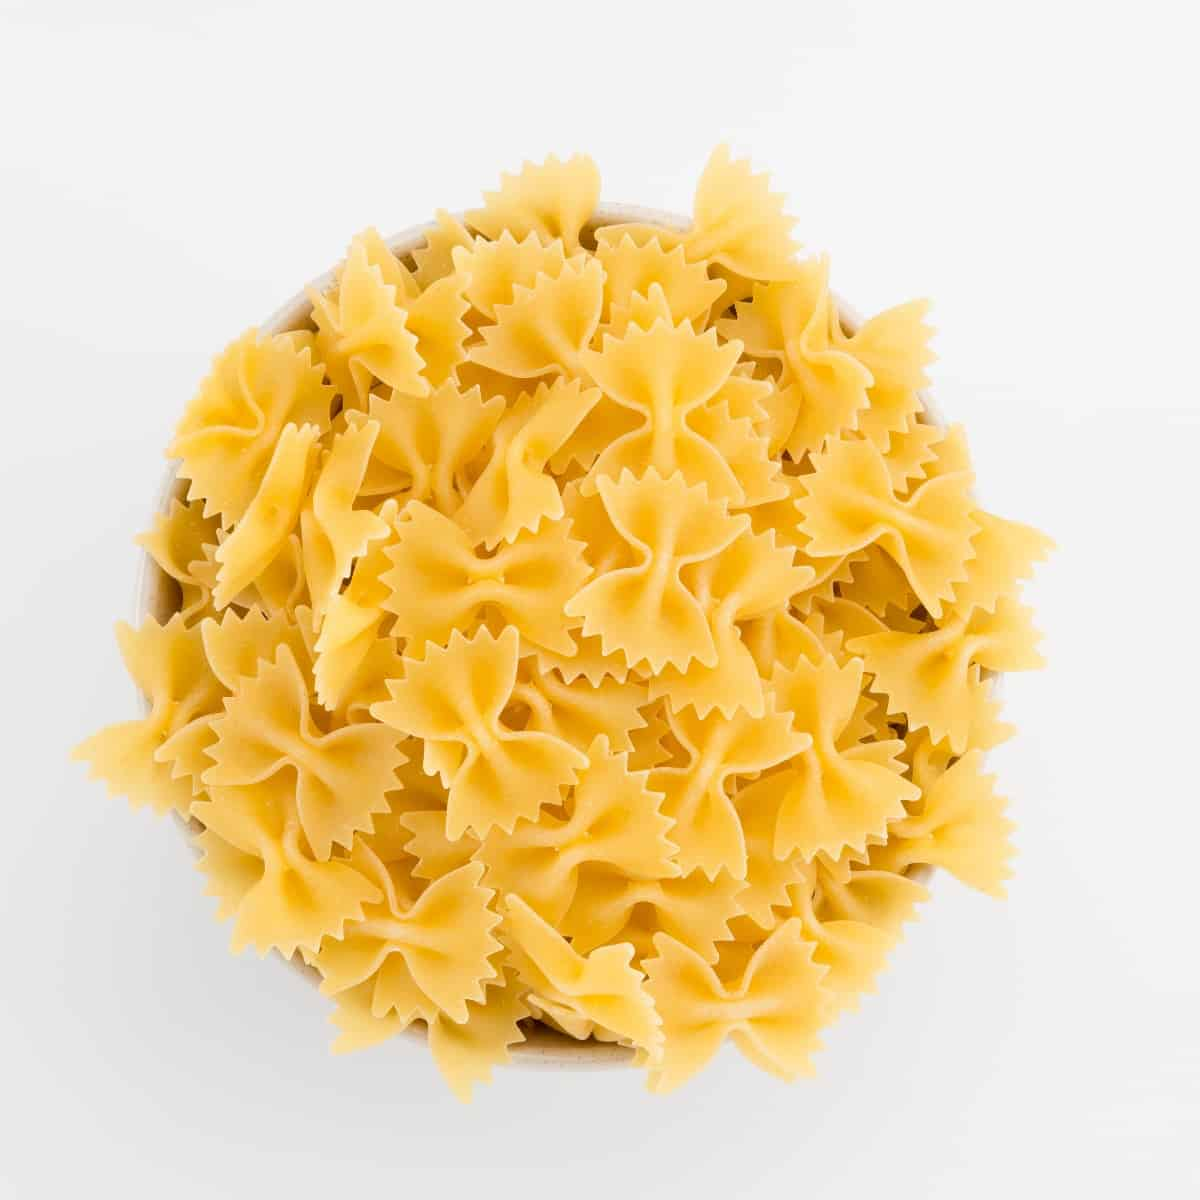 Dry uncooked farfalle pasta in small bowl from above.